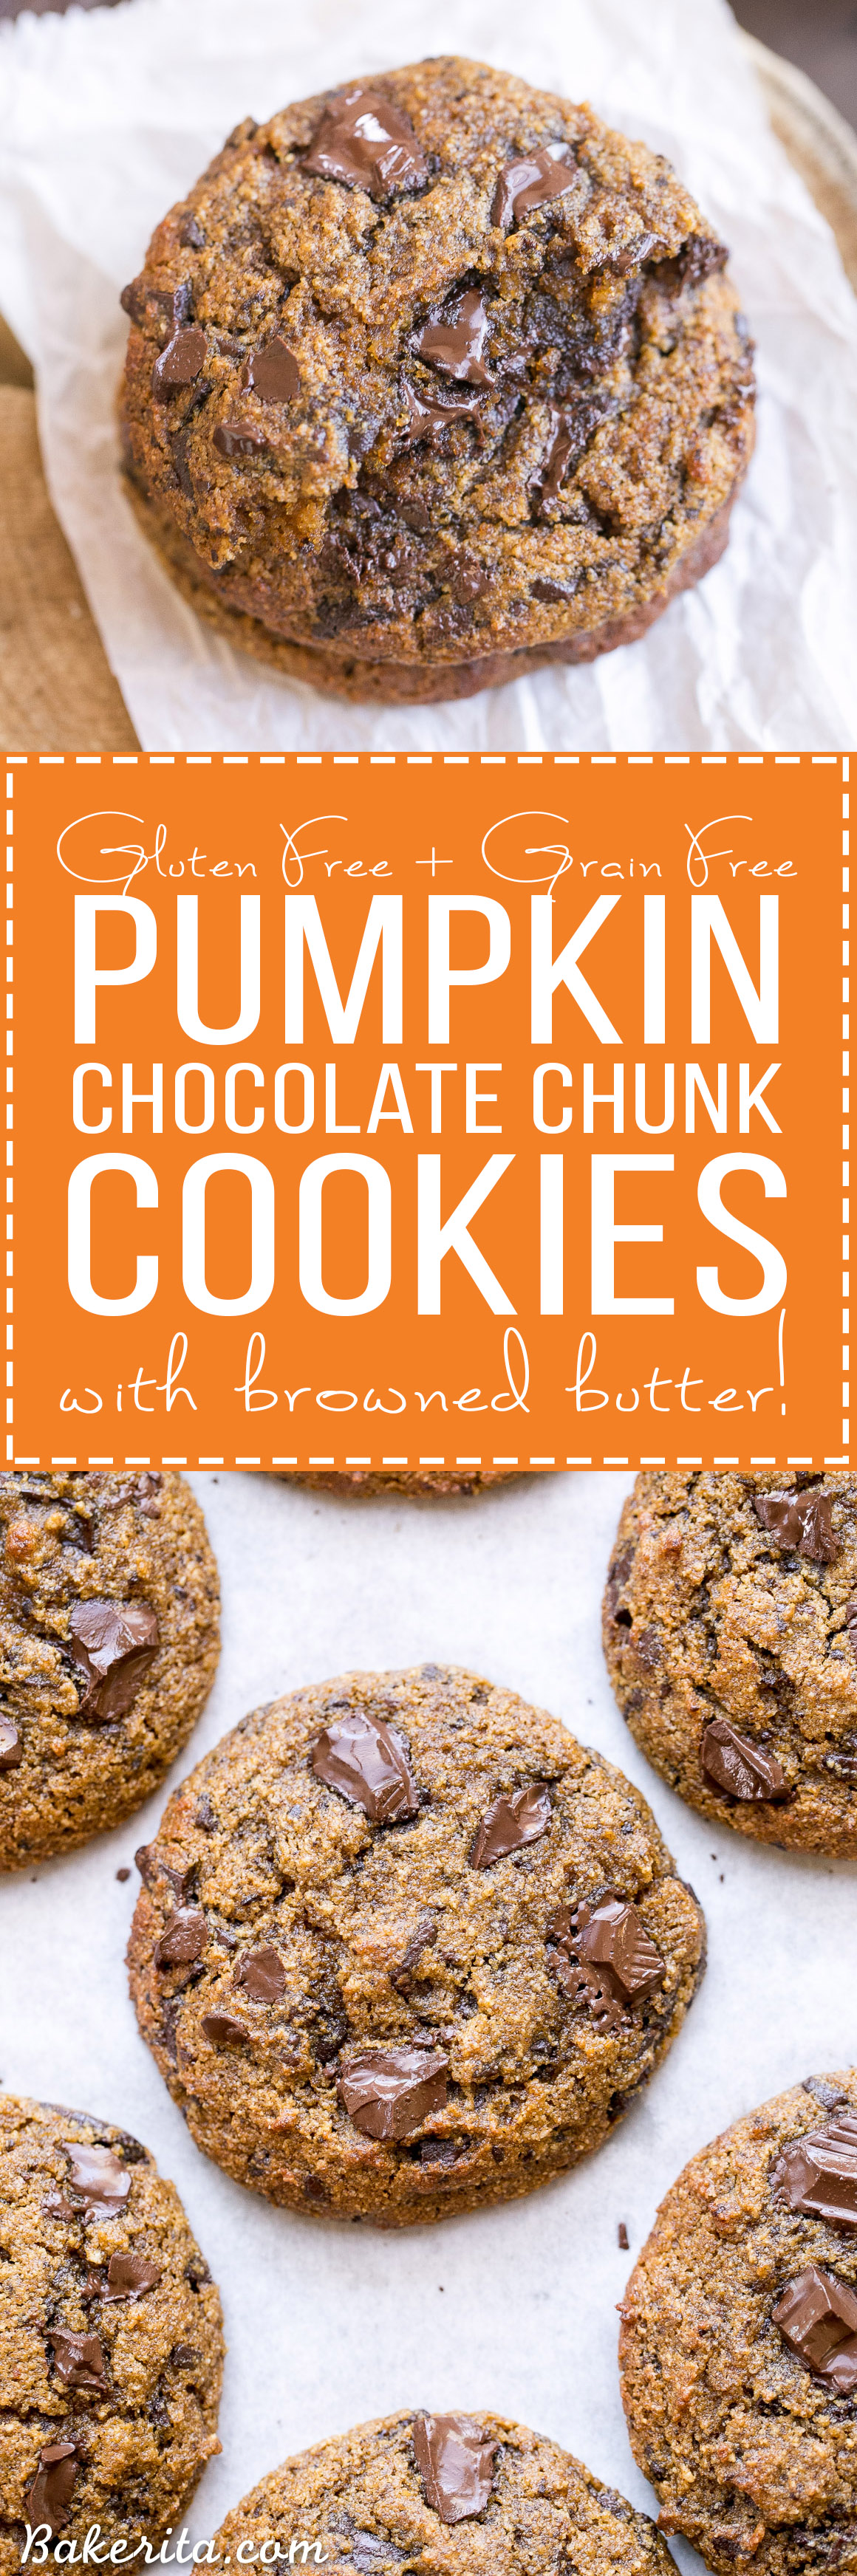 These Pumpkin Chocolate Chunk Cookies are made with browned butter, Cassonade sugar and flavored with cinnamon, nutmeg + cloves! You'll love the big dark chocolate chunks in these gluten-free + grain-free cookies.